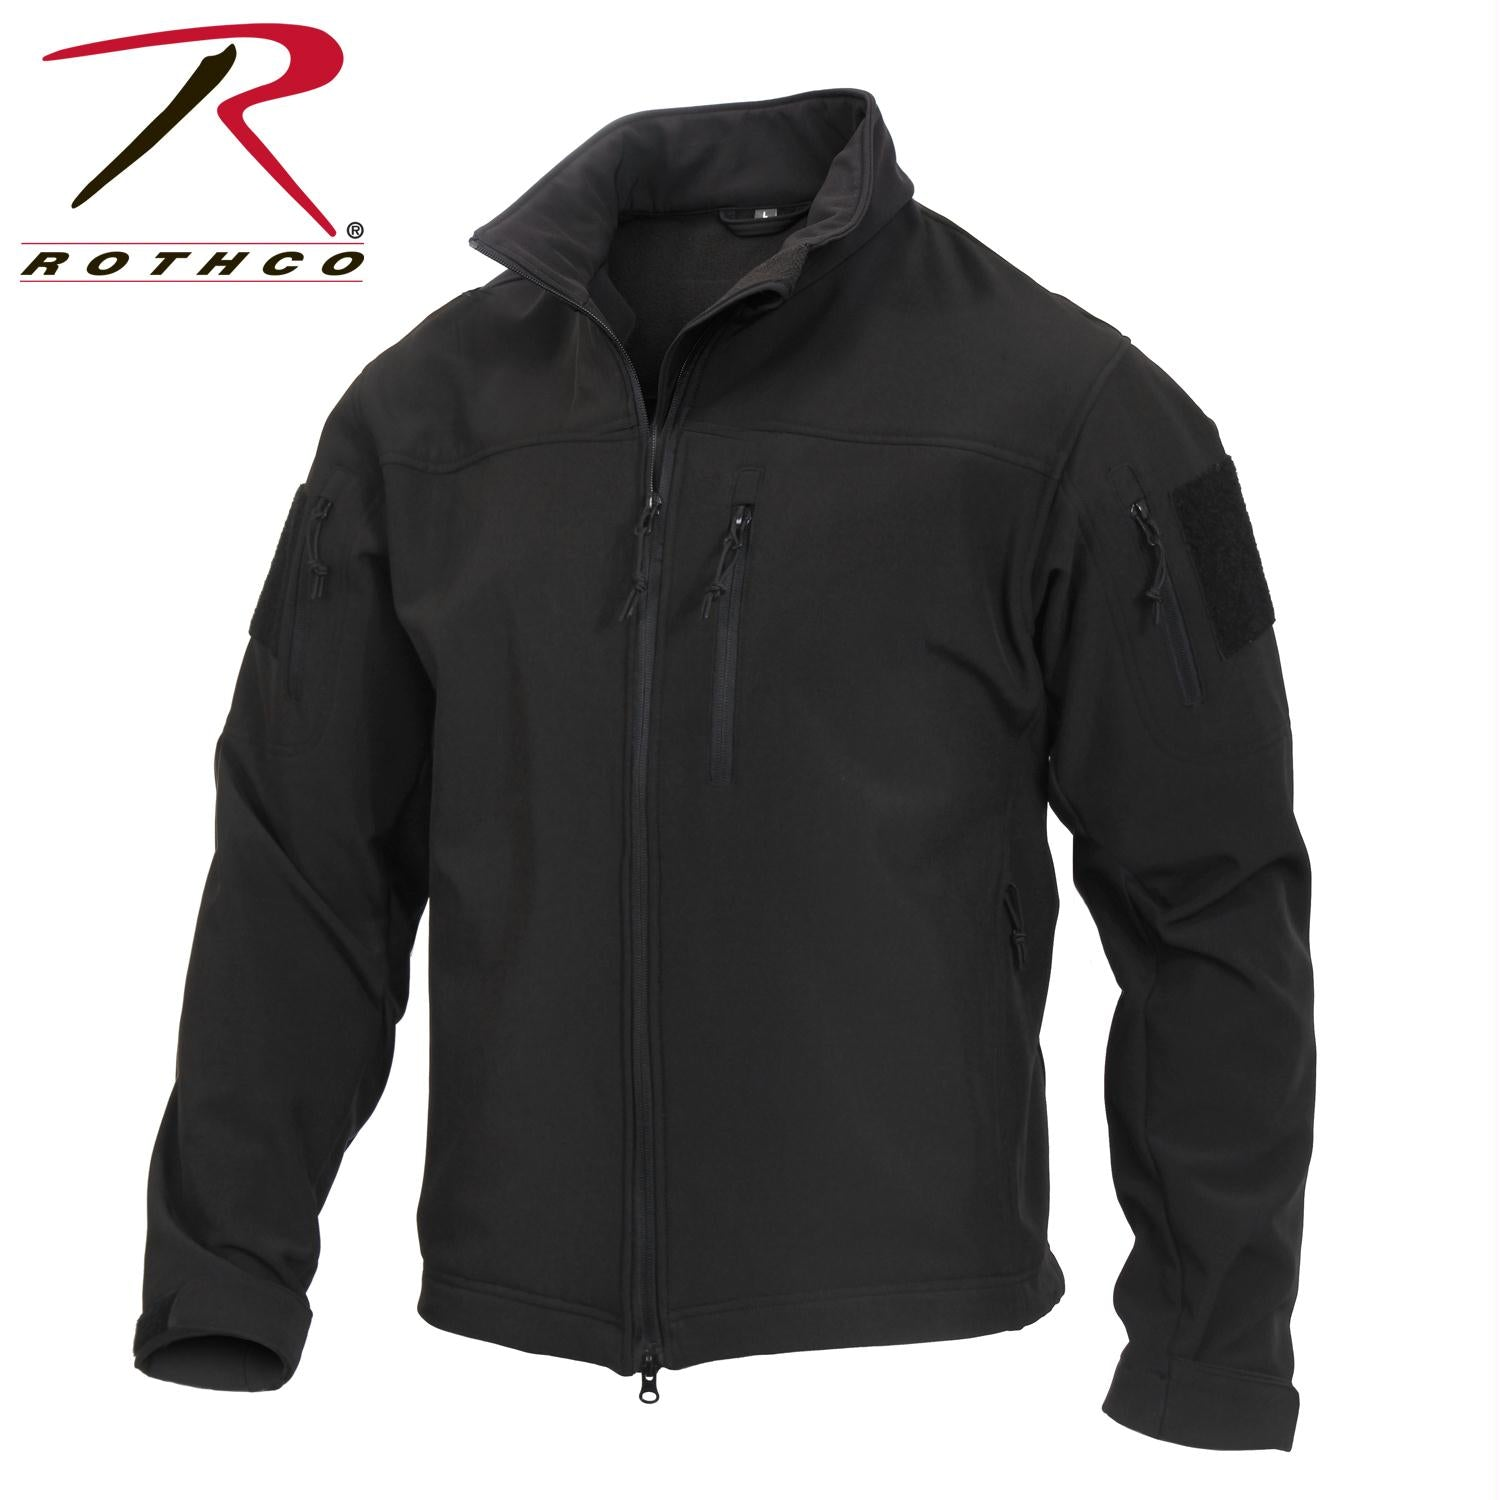 Rothco Stealth Ops Soft Shell Tactical Jacket - Black / XL